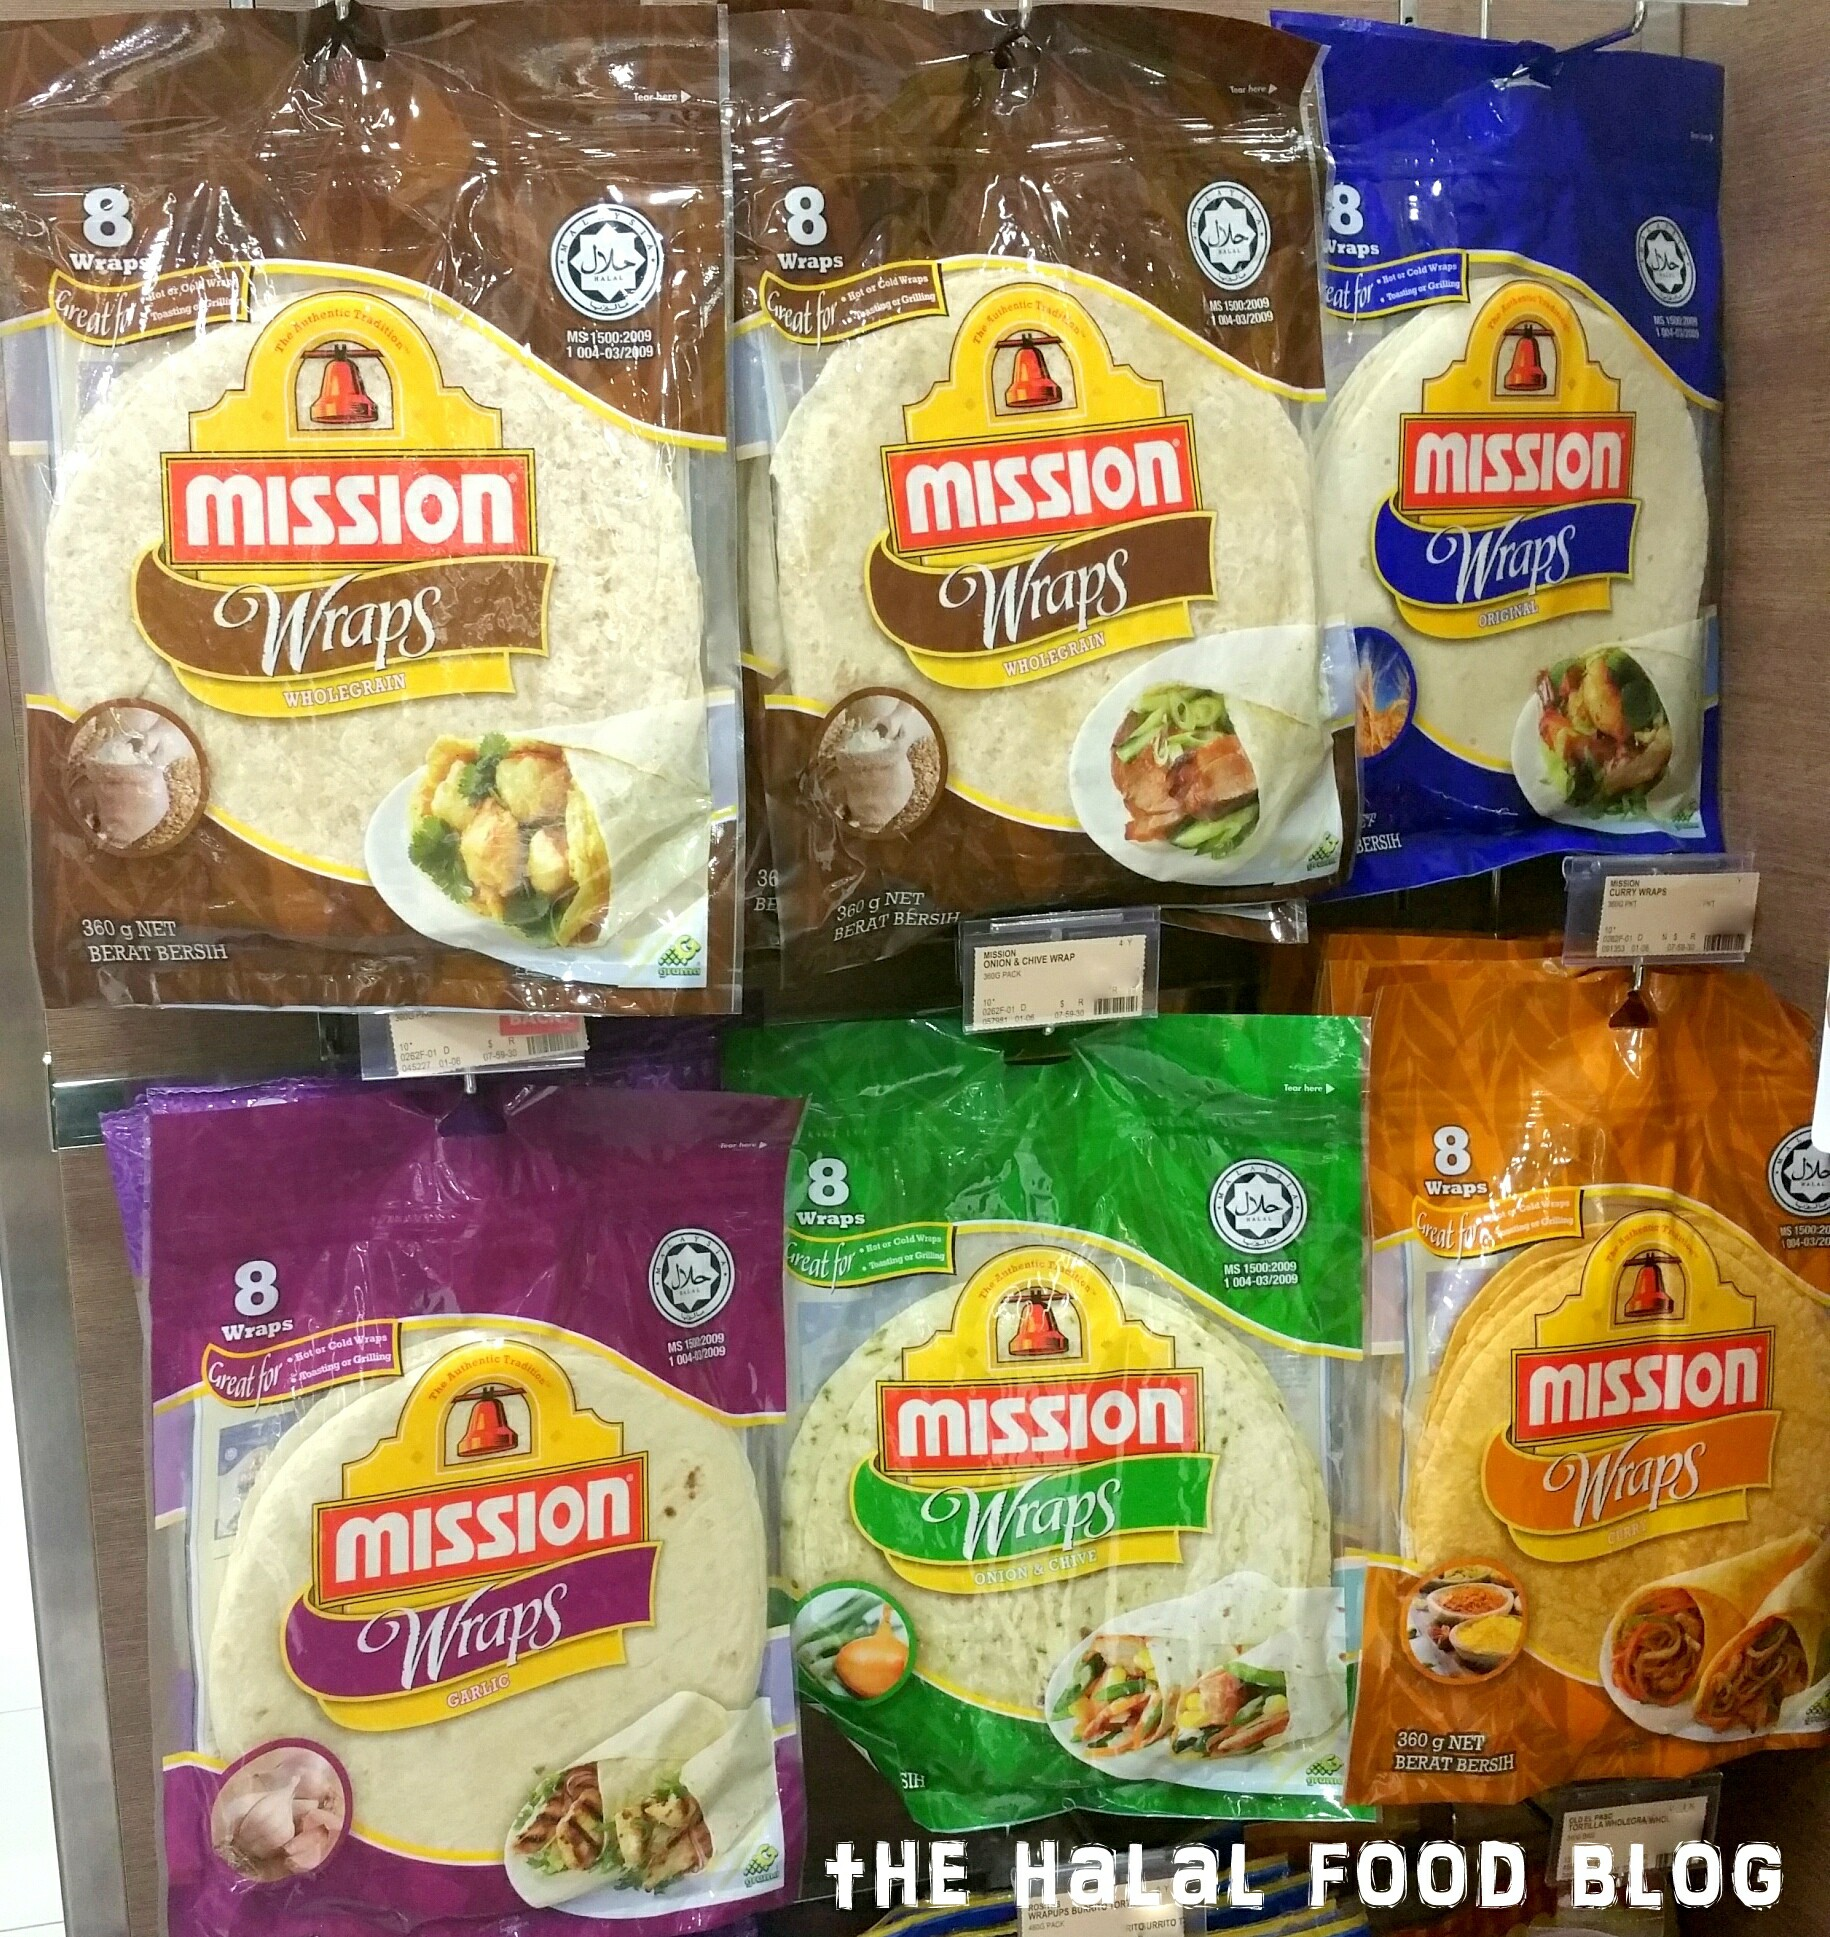 Mission Wraps – New Curry Wraps! – The Halal Food Blog